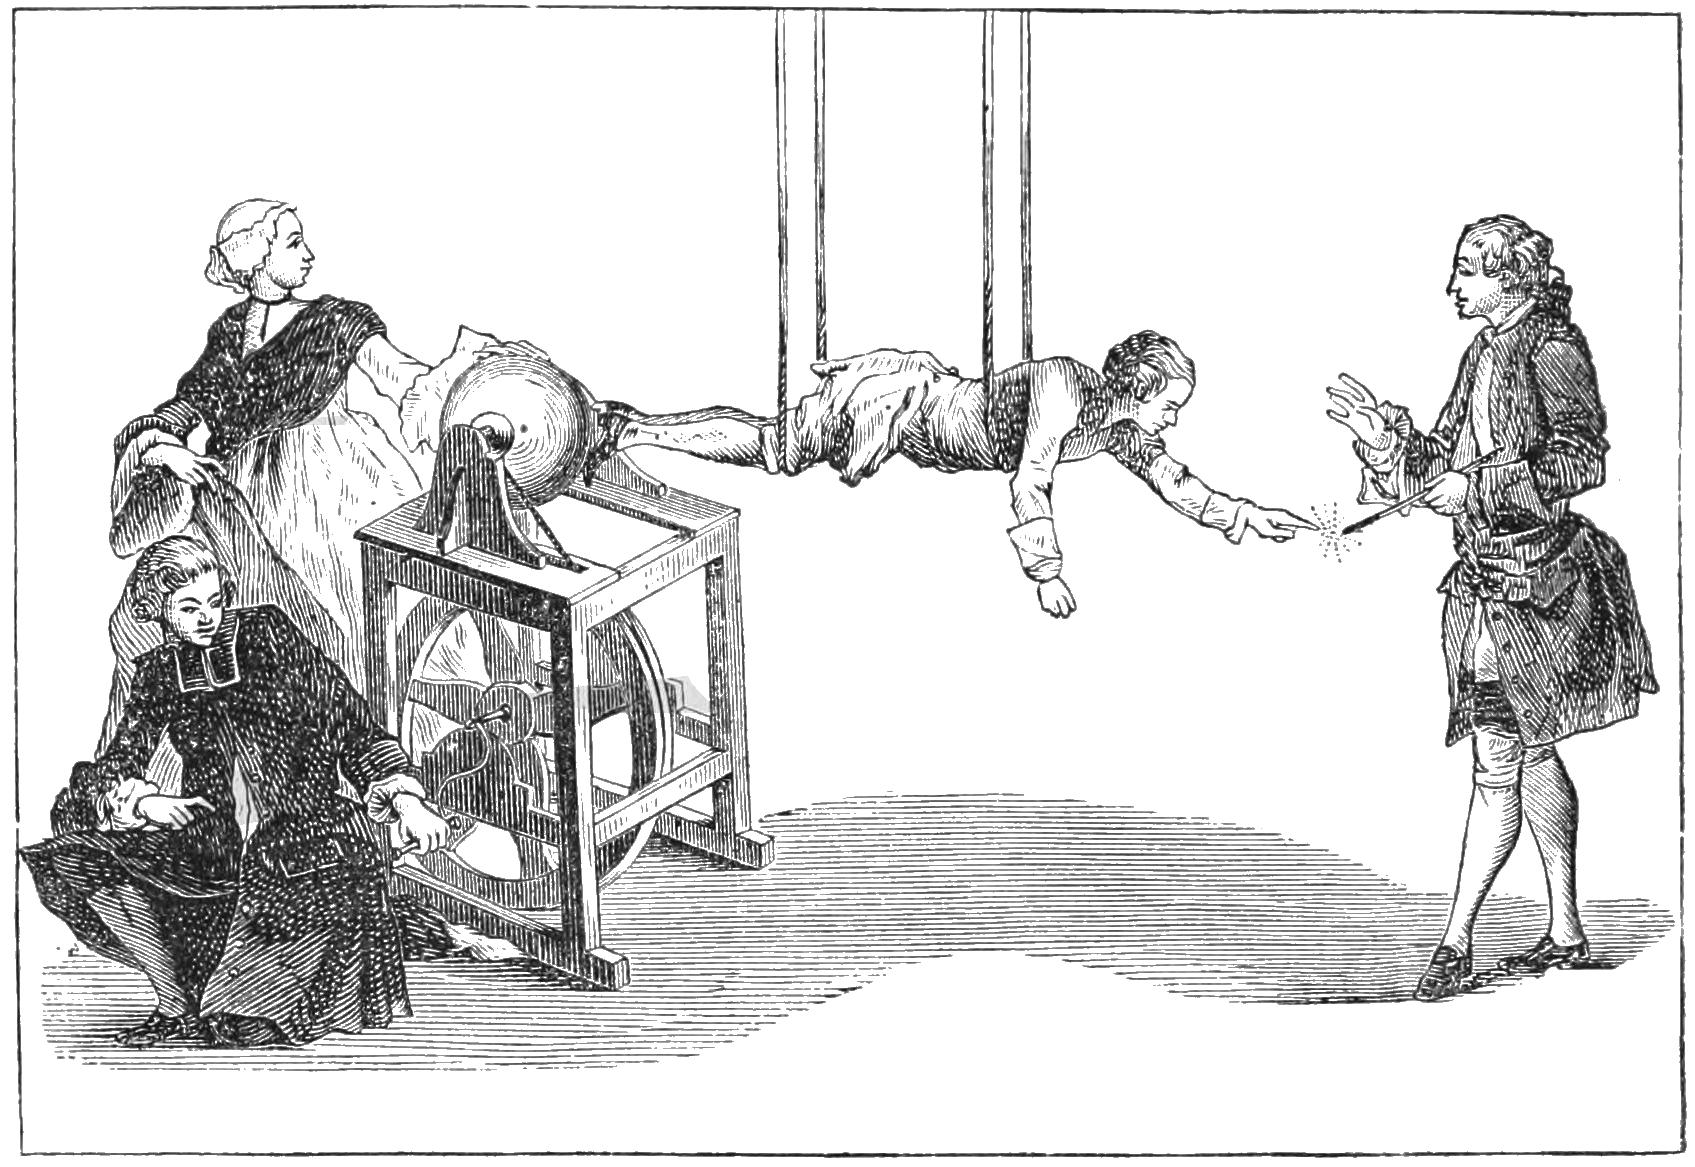 http://upload.wikimedia.org/wikipedia/commons/3/33/PSM_V17_D436_An_eighteenth_century_electrical_experiment.jpg